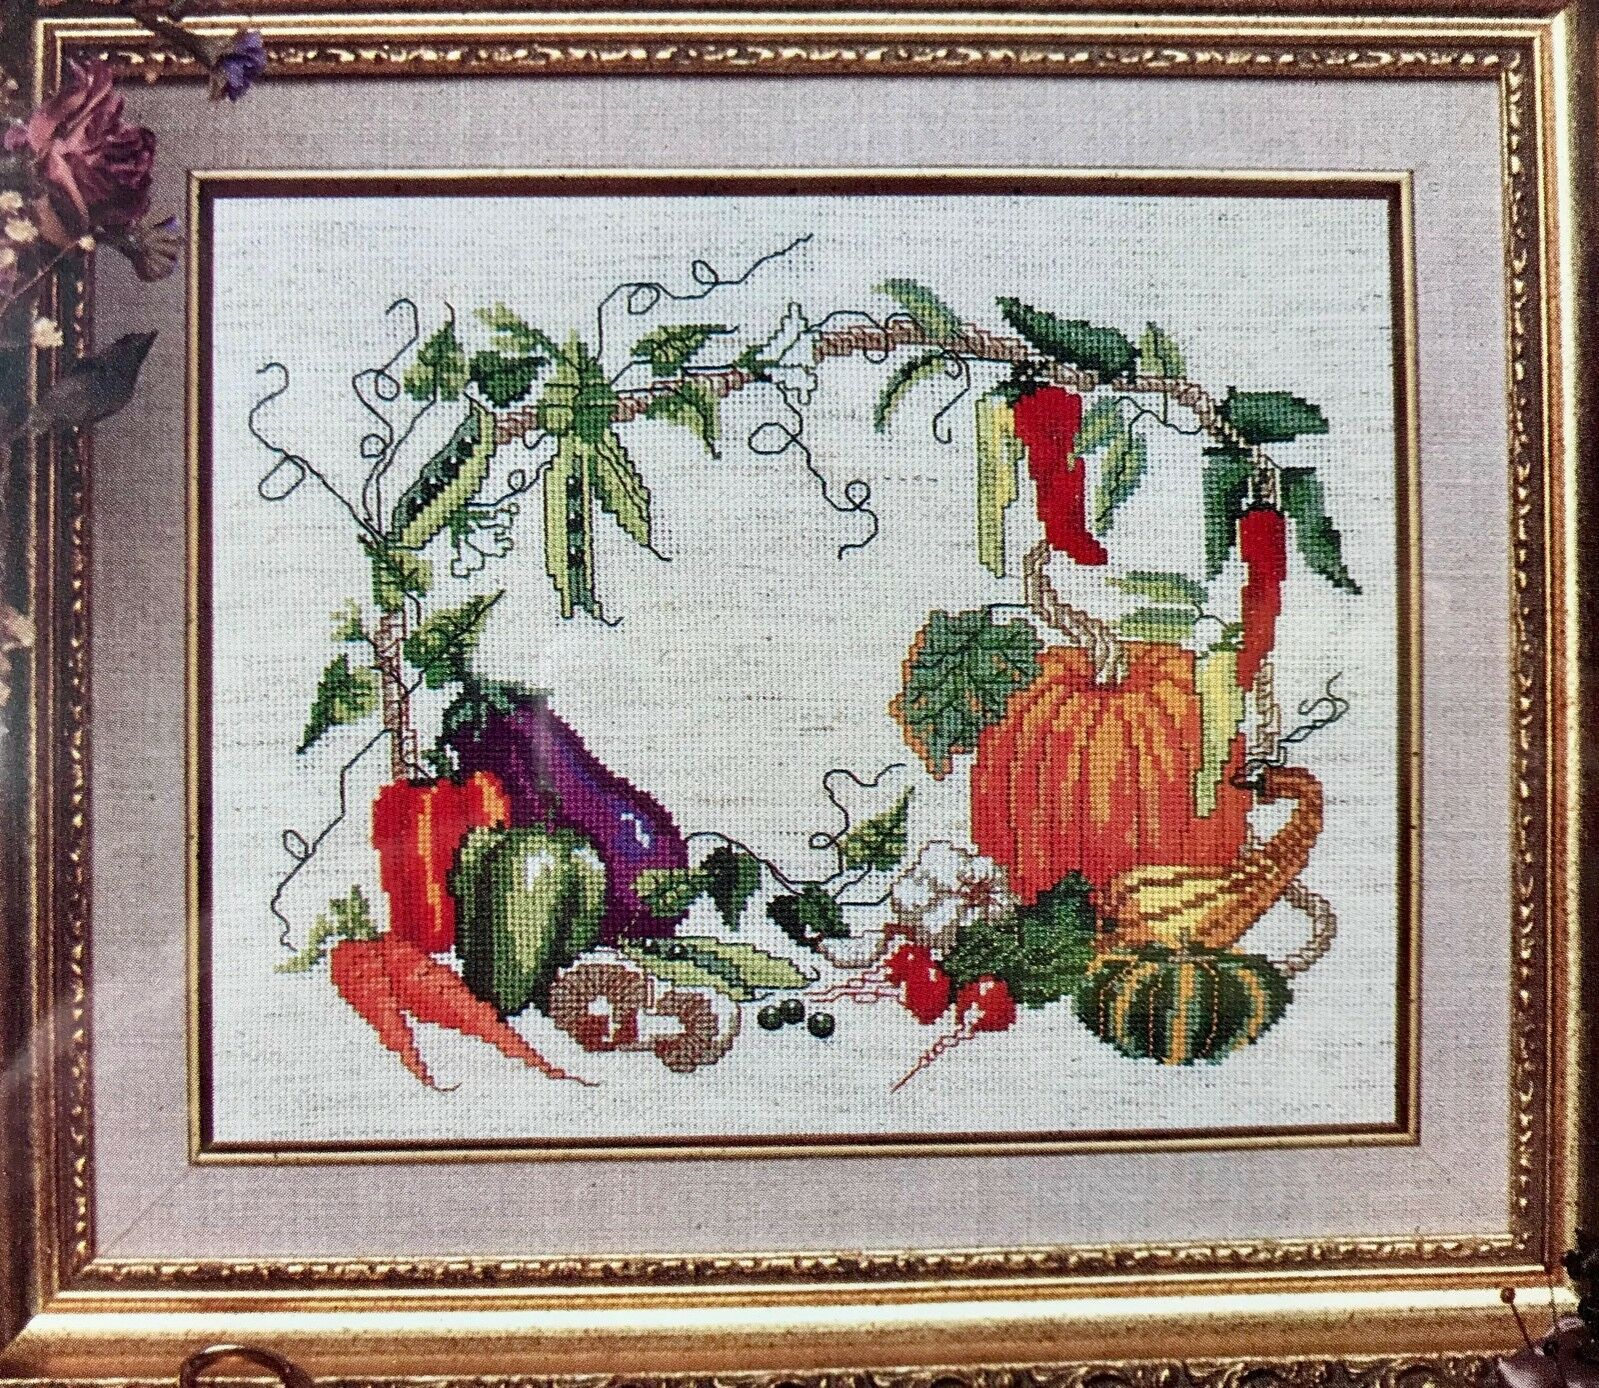 Harvest Time Cross Stitch Kit 5239 Heirloom Treasure Designs for the Needle 8x10